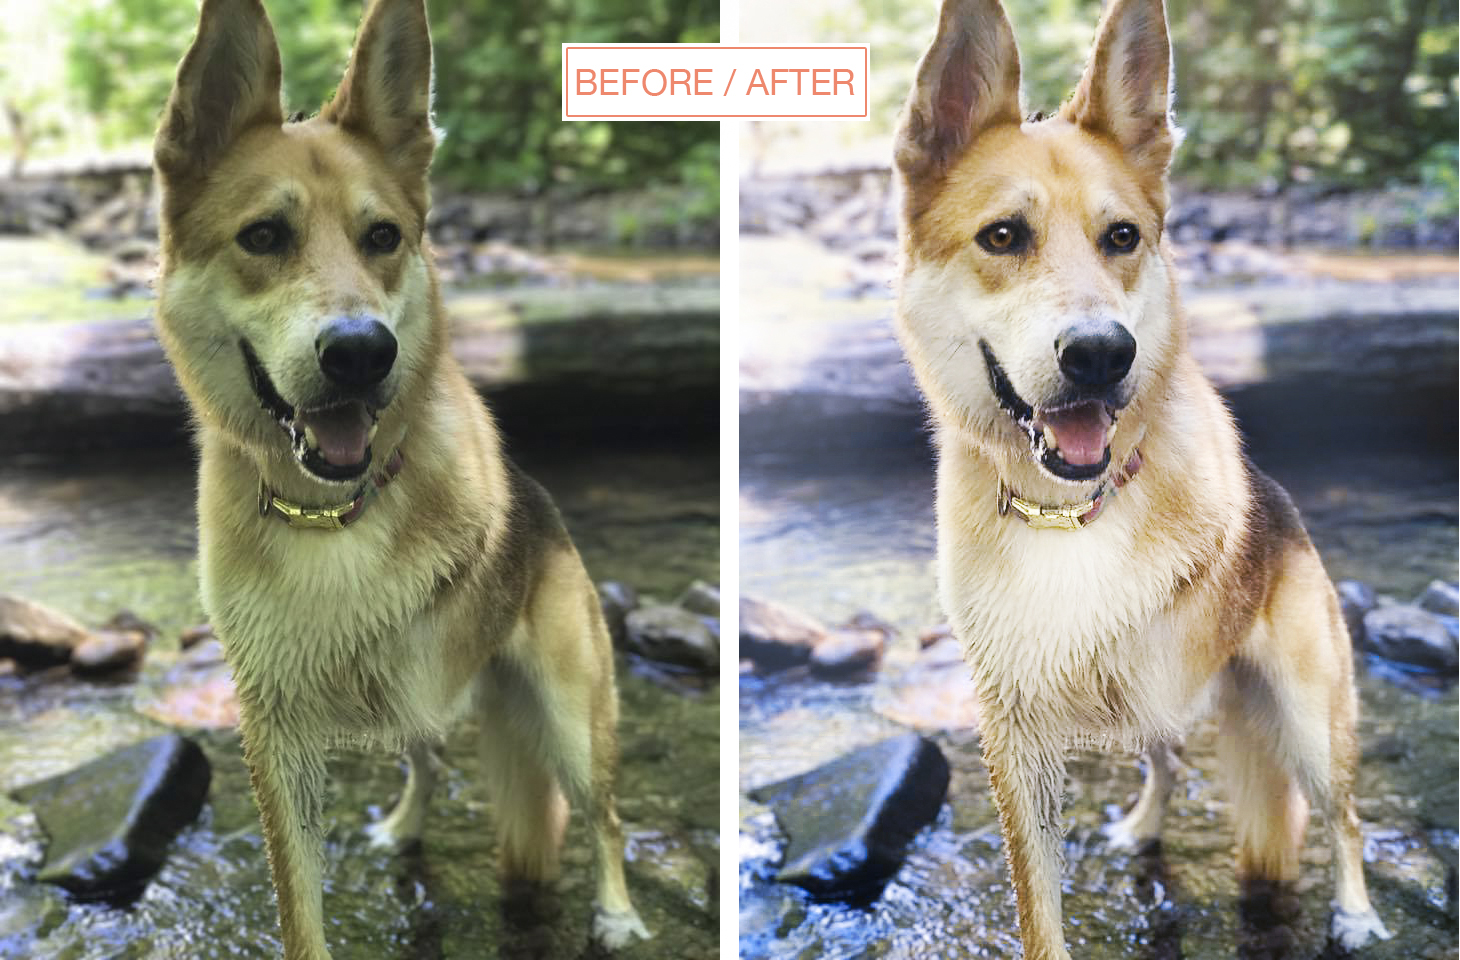 Before/after | photoshop edit of photo by @casthecarolina | edited by www.DOGvision.be